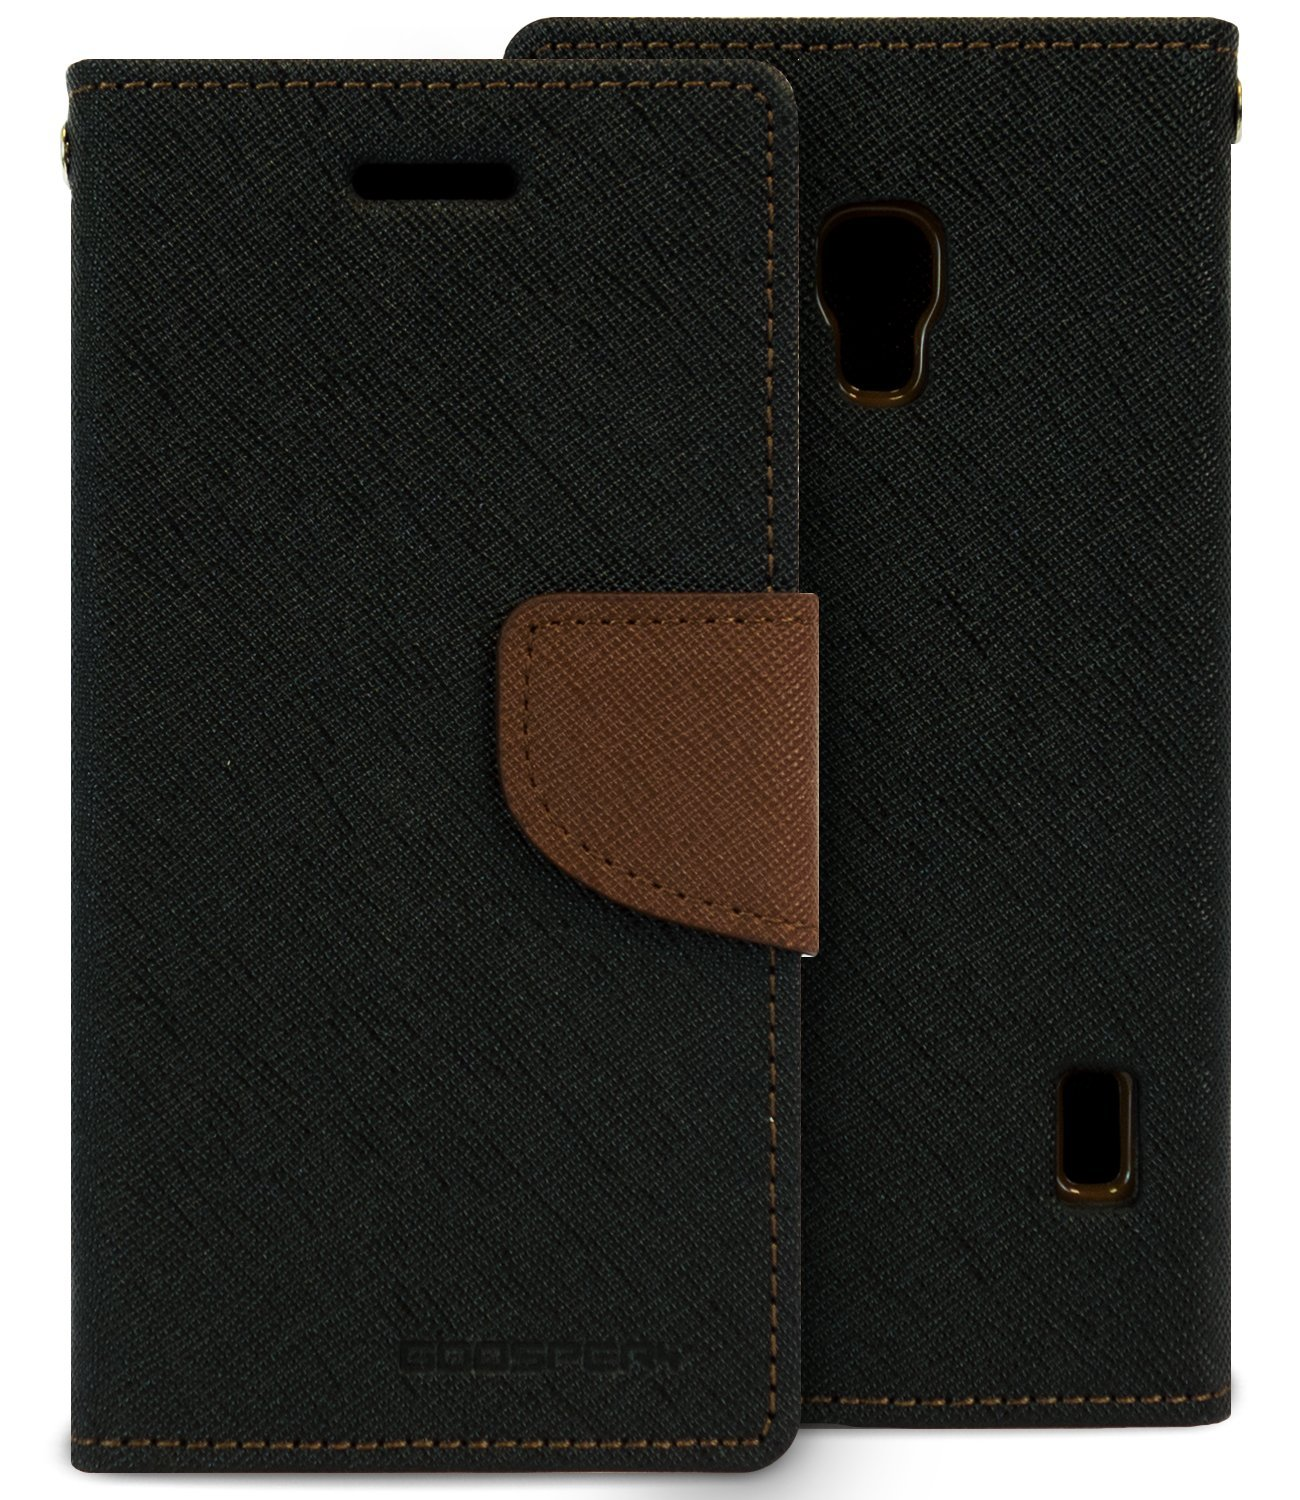 Lg Optimus F6 Case Drop Protection Goospery Fancy Iphone 8 Diary Navy Lime Wallet Pu Saffiano Leather Id Card Slots Cash Slot Stand Flip Cover